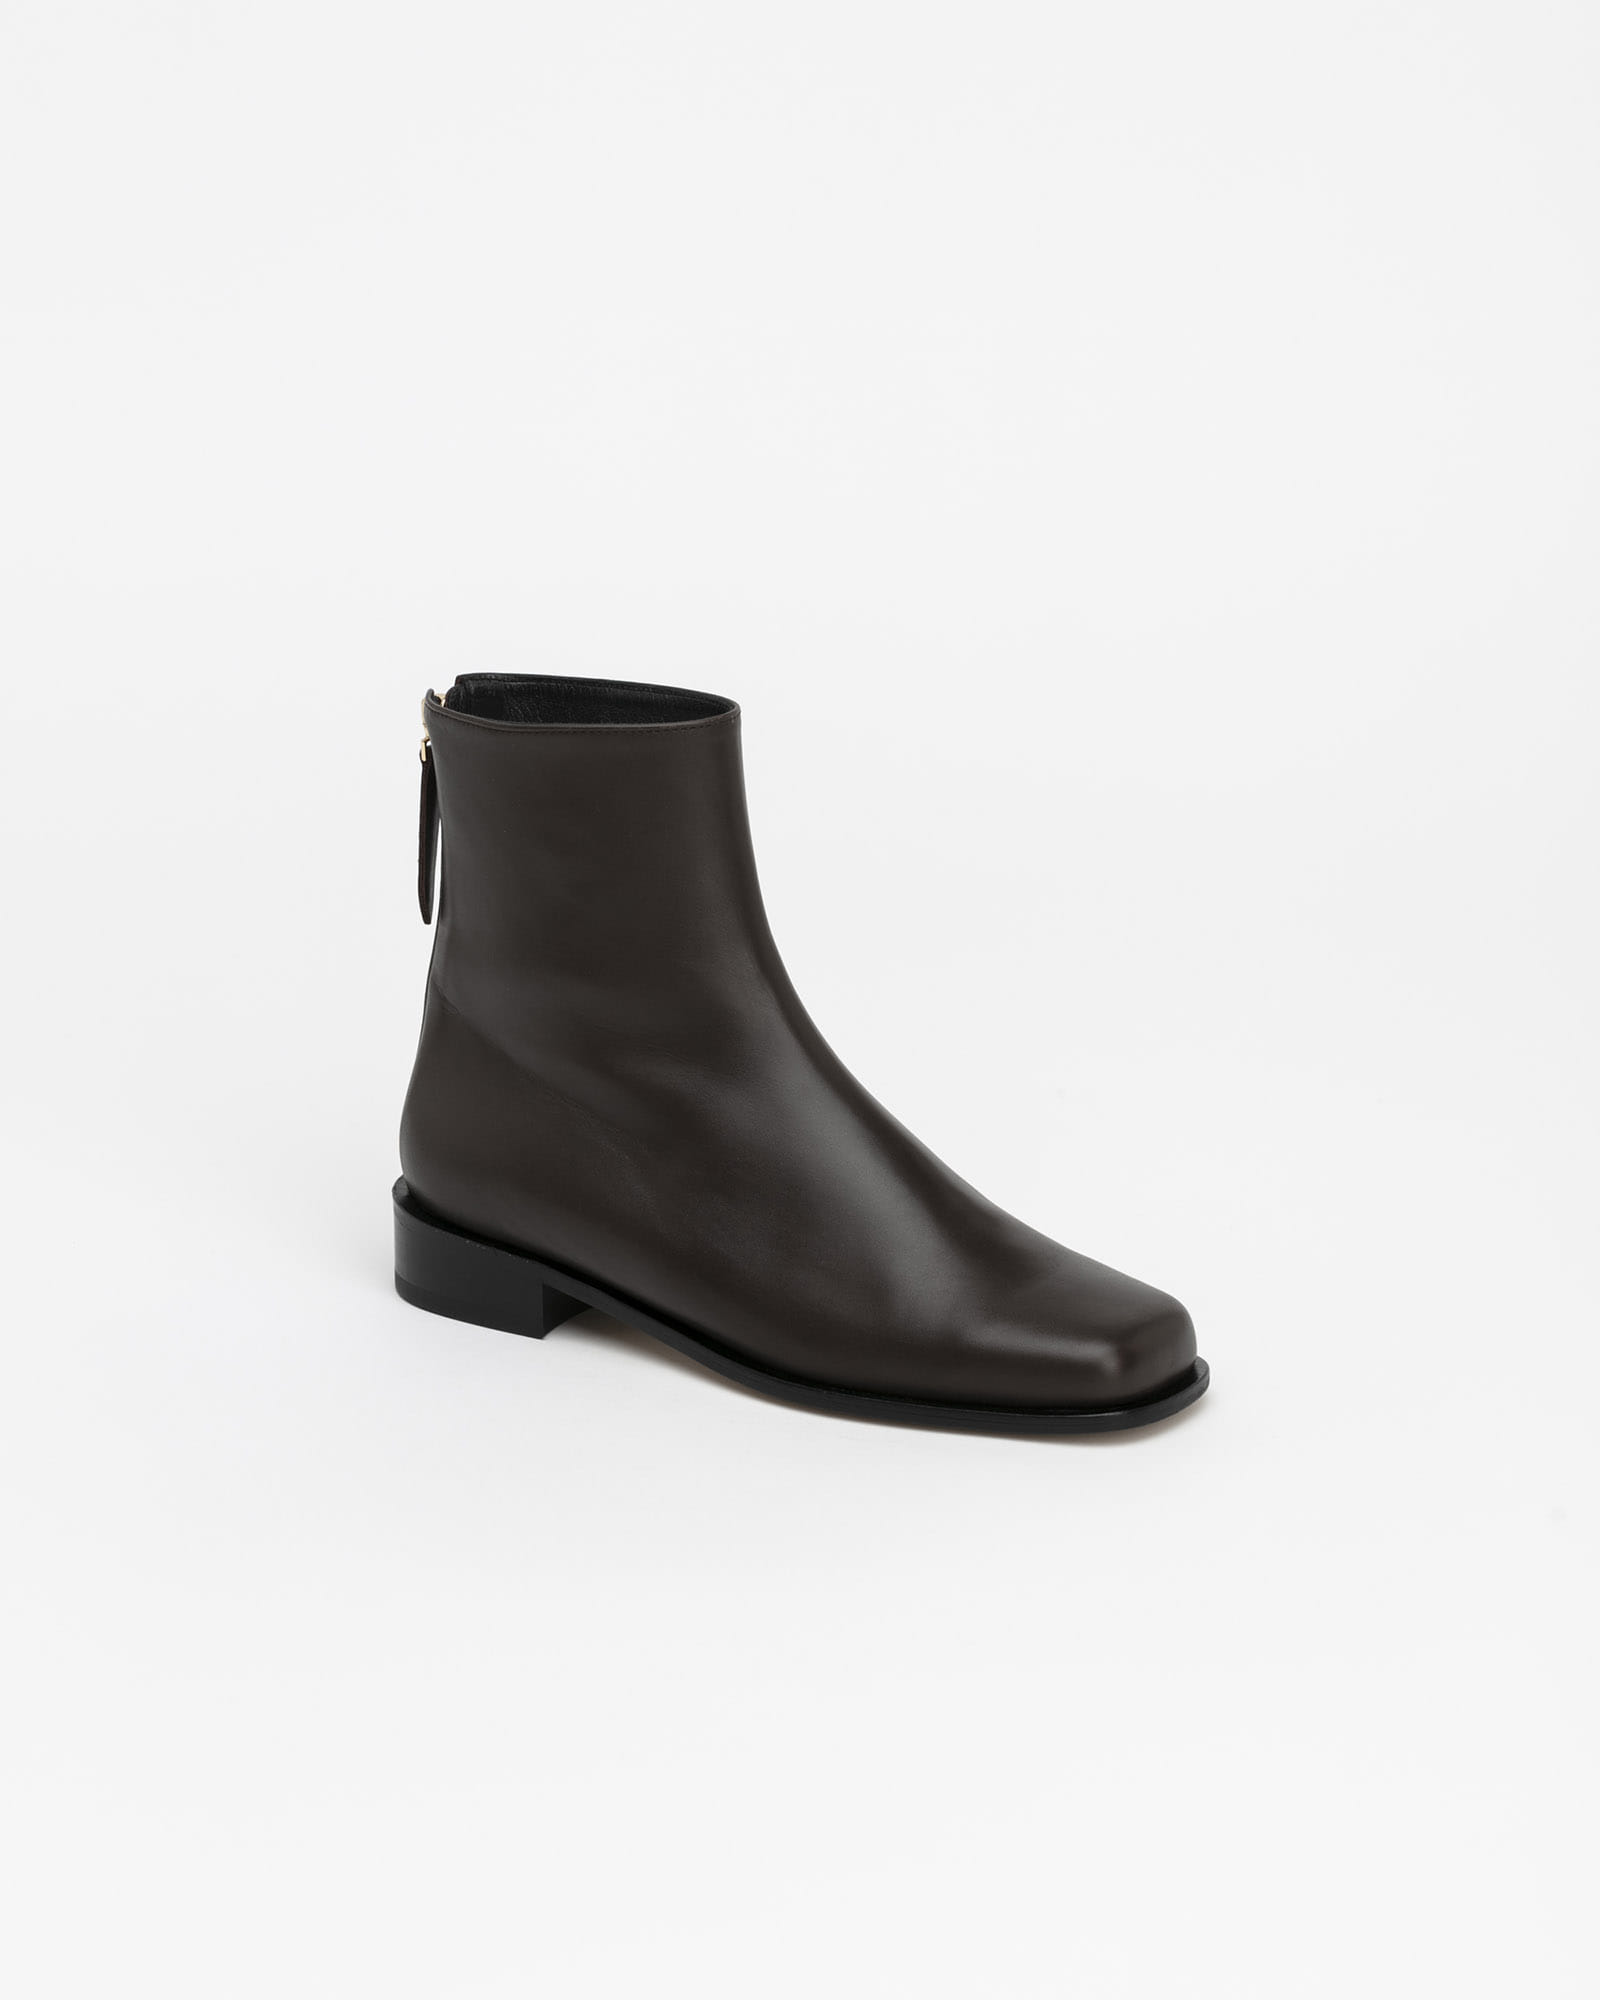 Robin Boots in Roast Brown